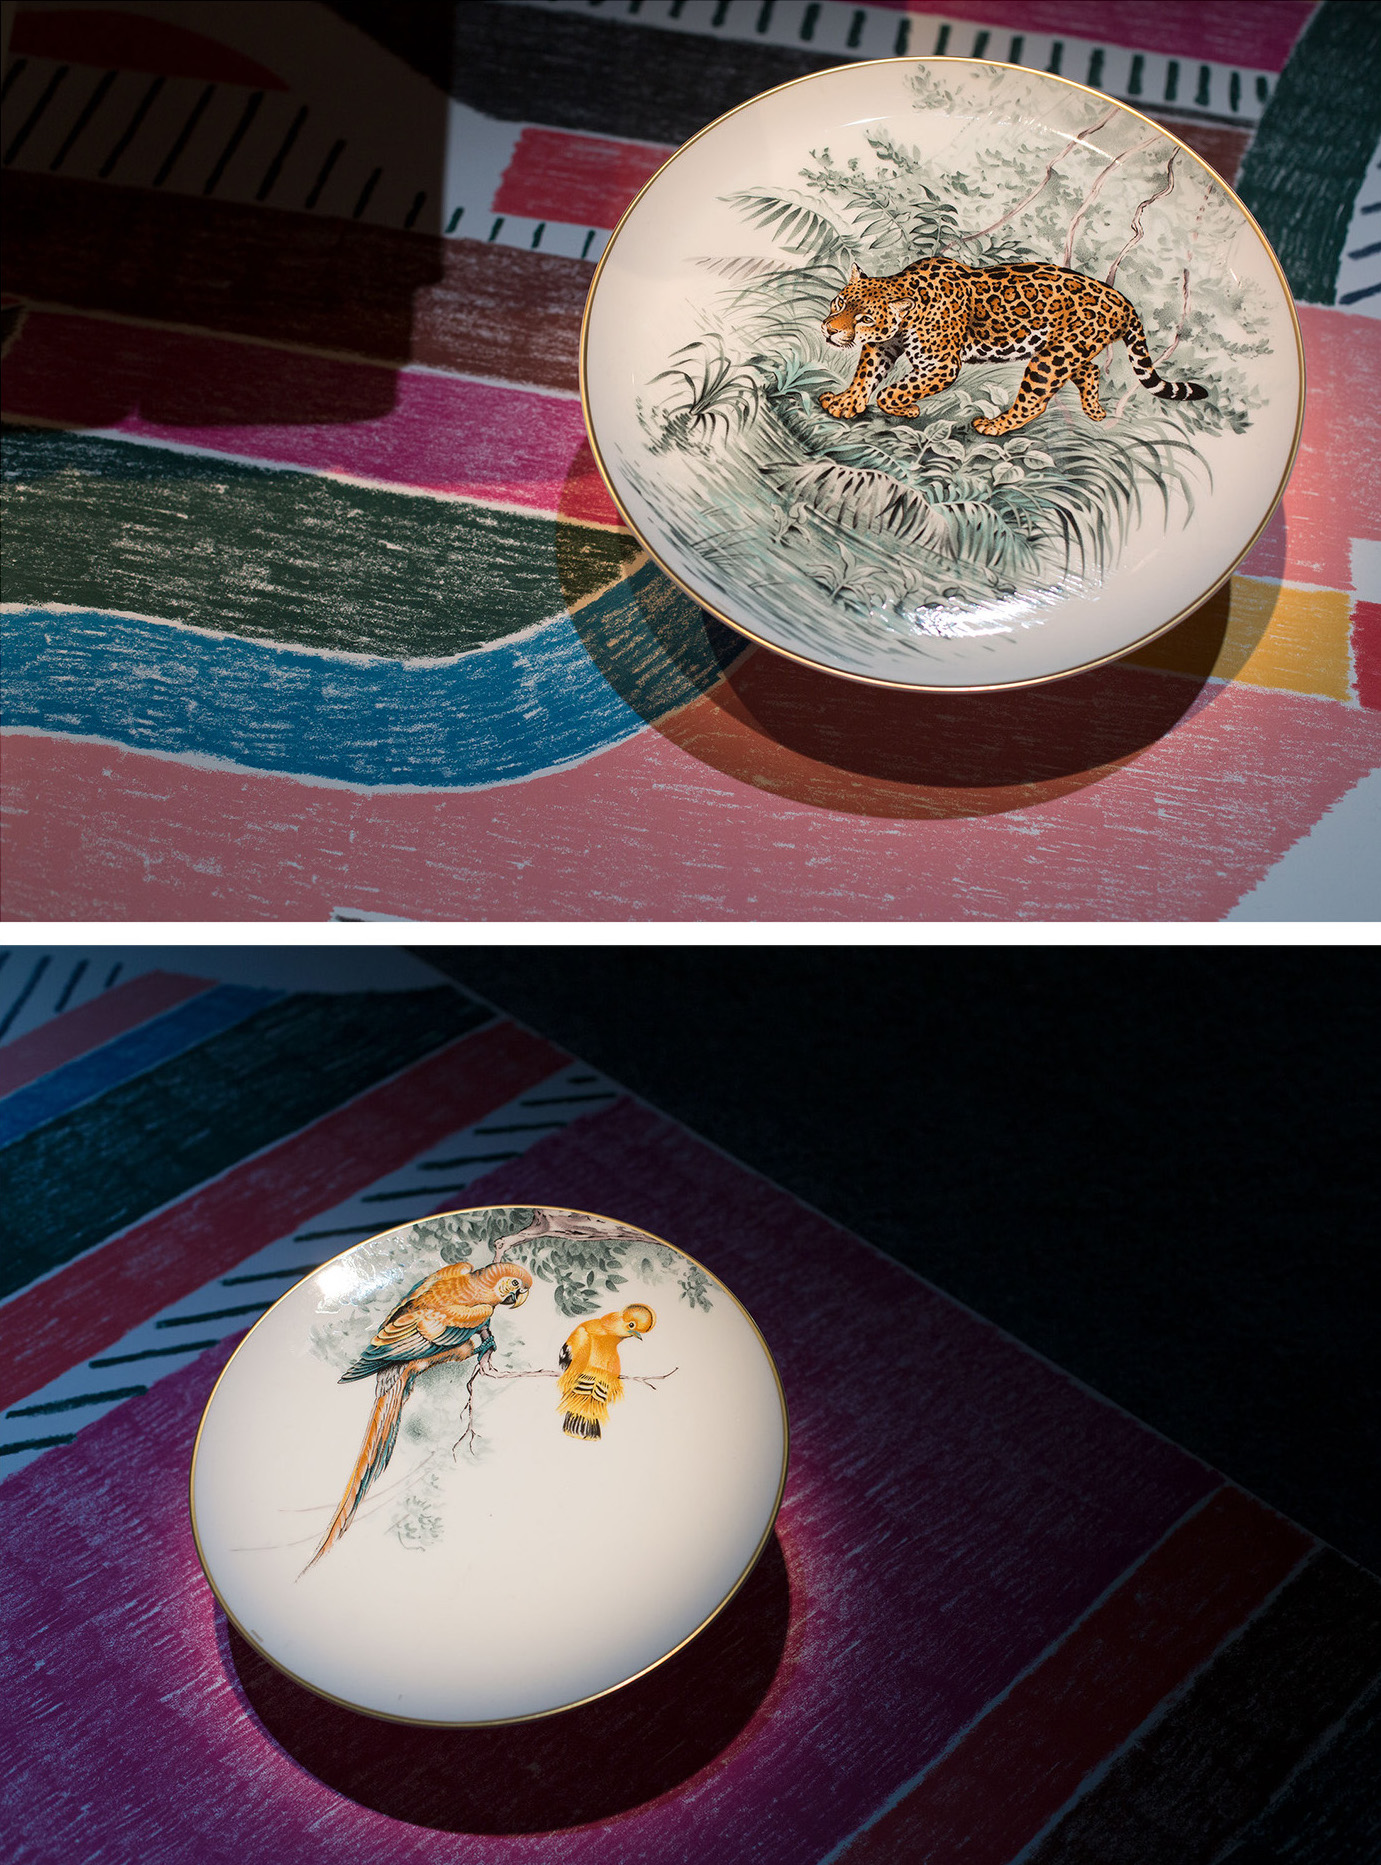 Porcelain plates from the Carnets d'Equateur collection, featuring paintings by Robert Dallet.